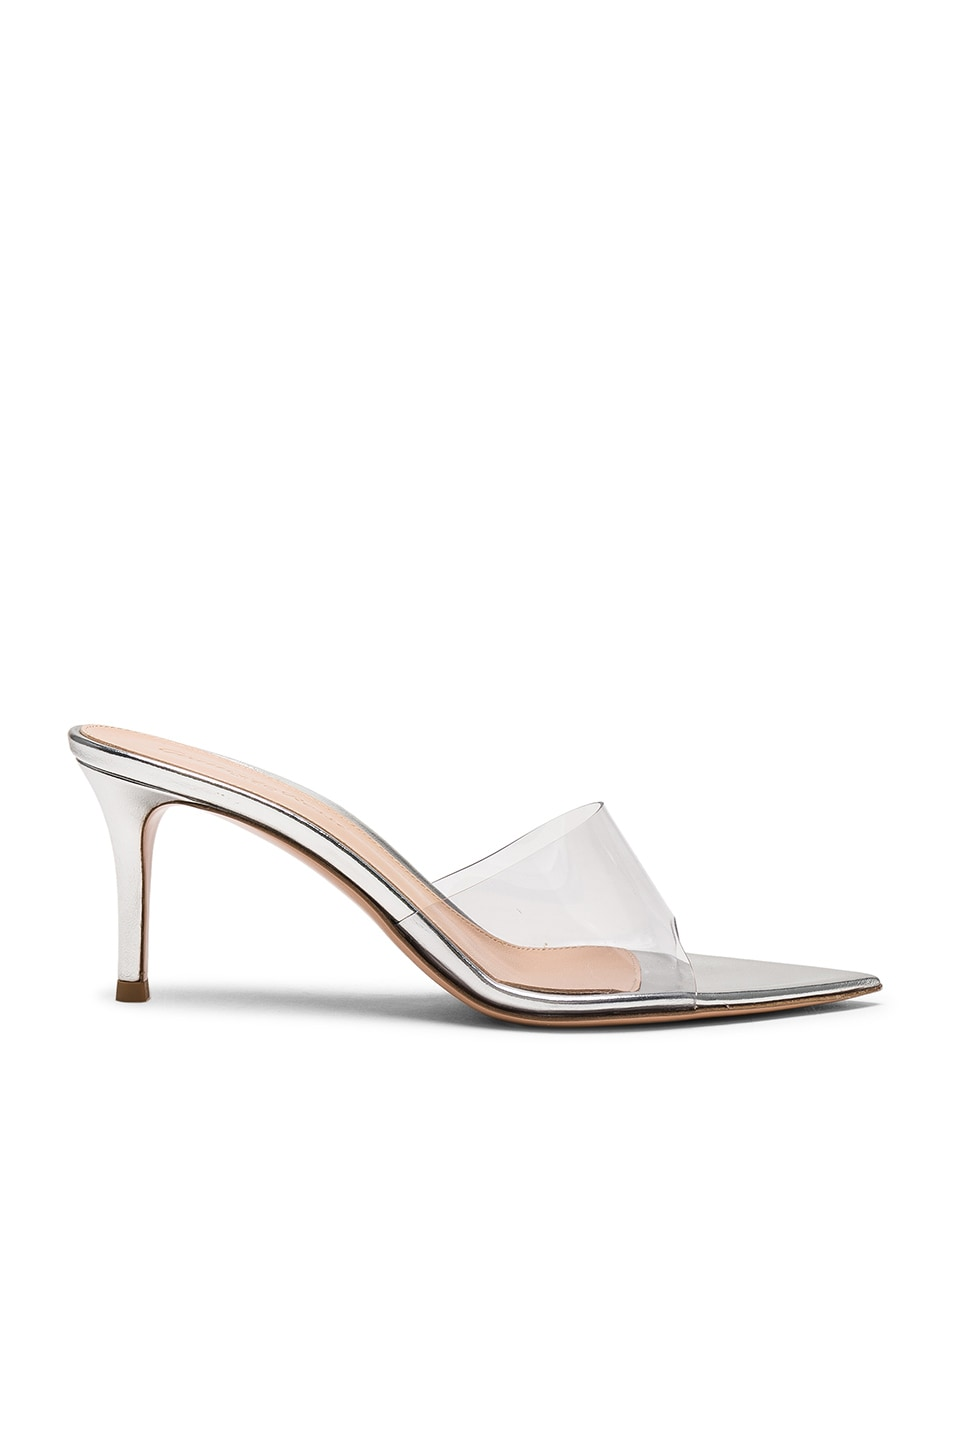 Image 1 of Gianvito Rossi Nappa Silk & Plexi Mules in Silver & Transparent